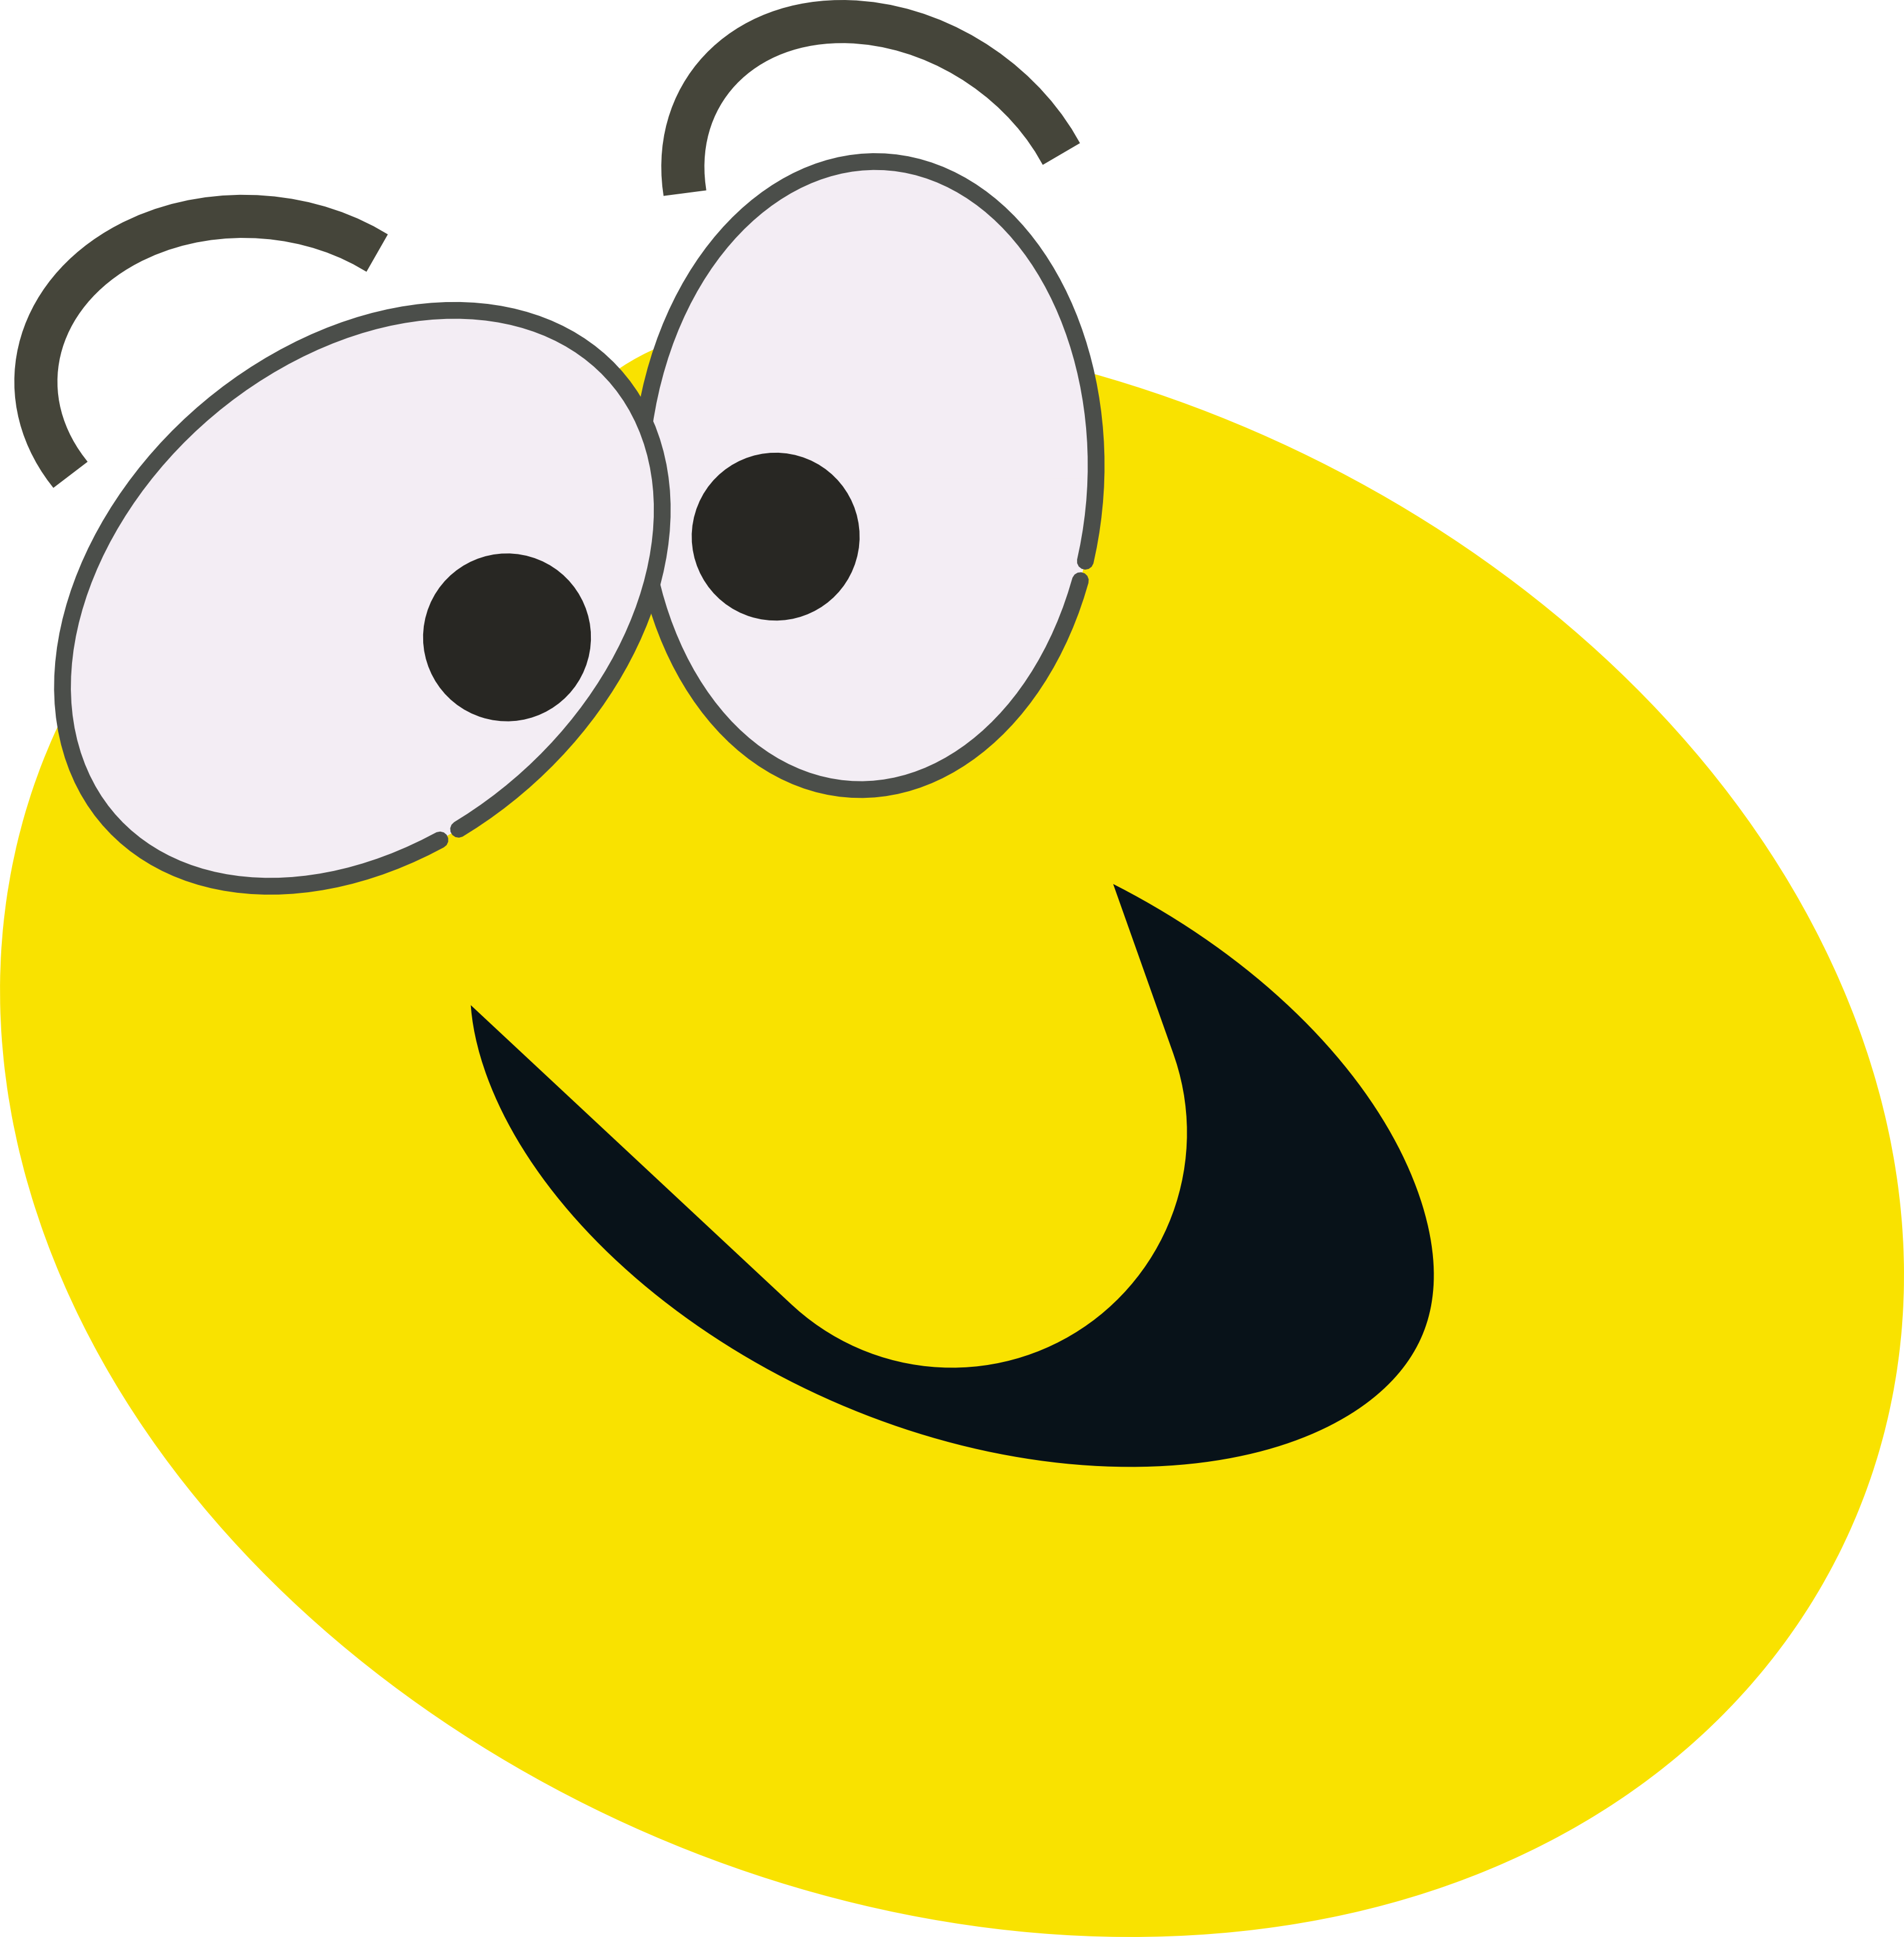 Smiley Face Clip Art Animated | Clipart library - Free Clipart Images